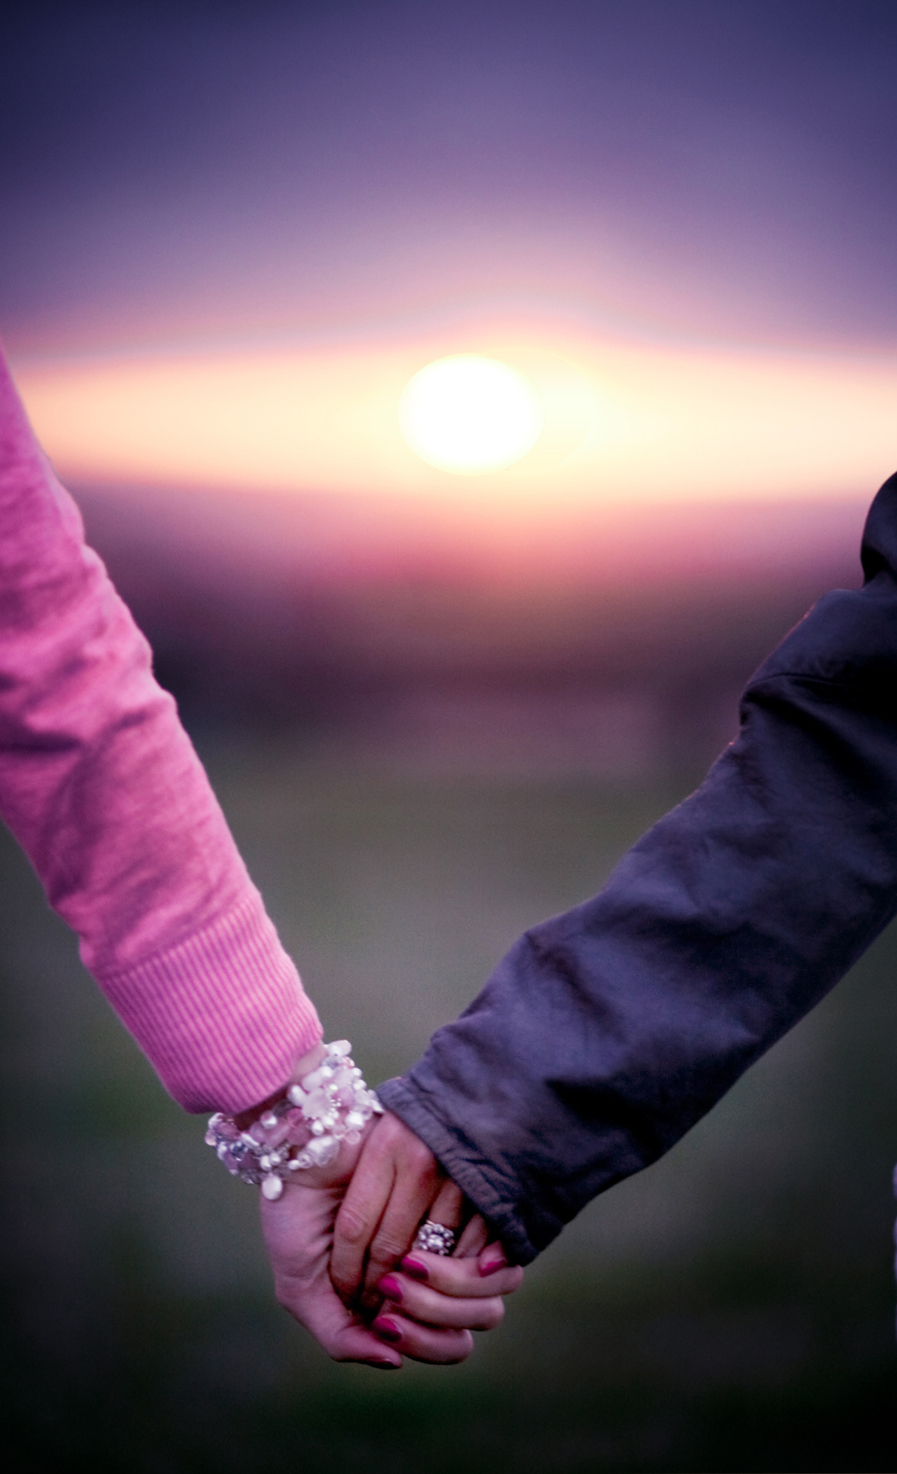 Hands at Sunset Day – 29/30